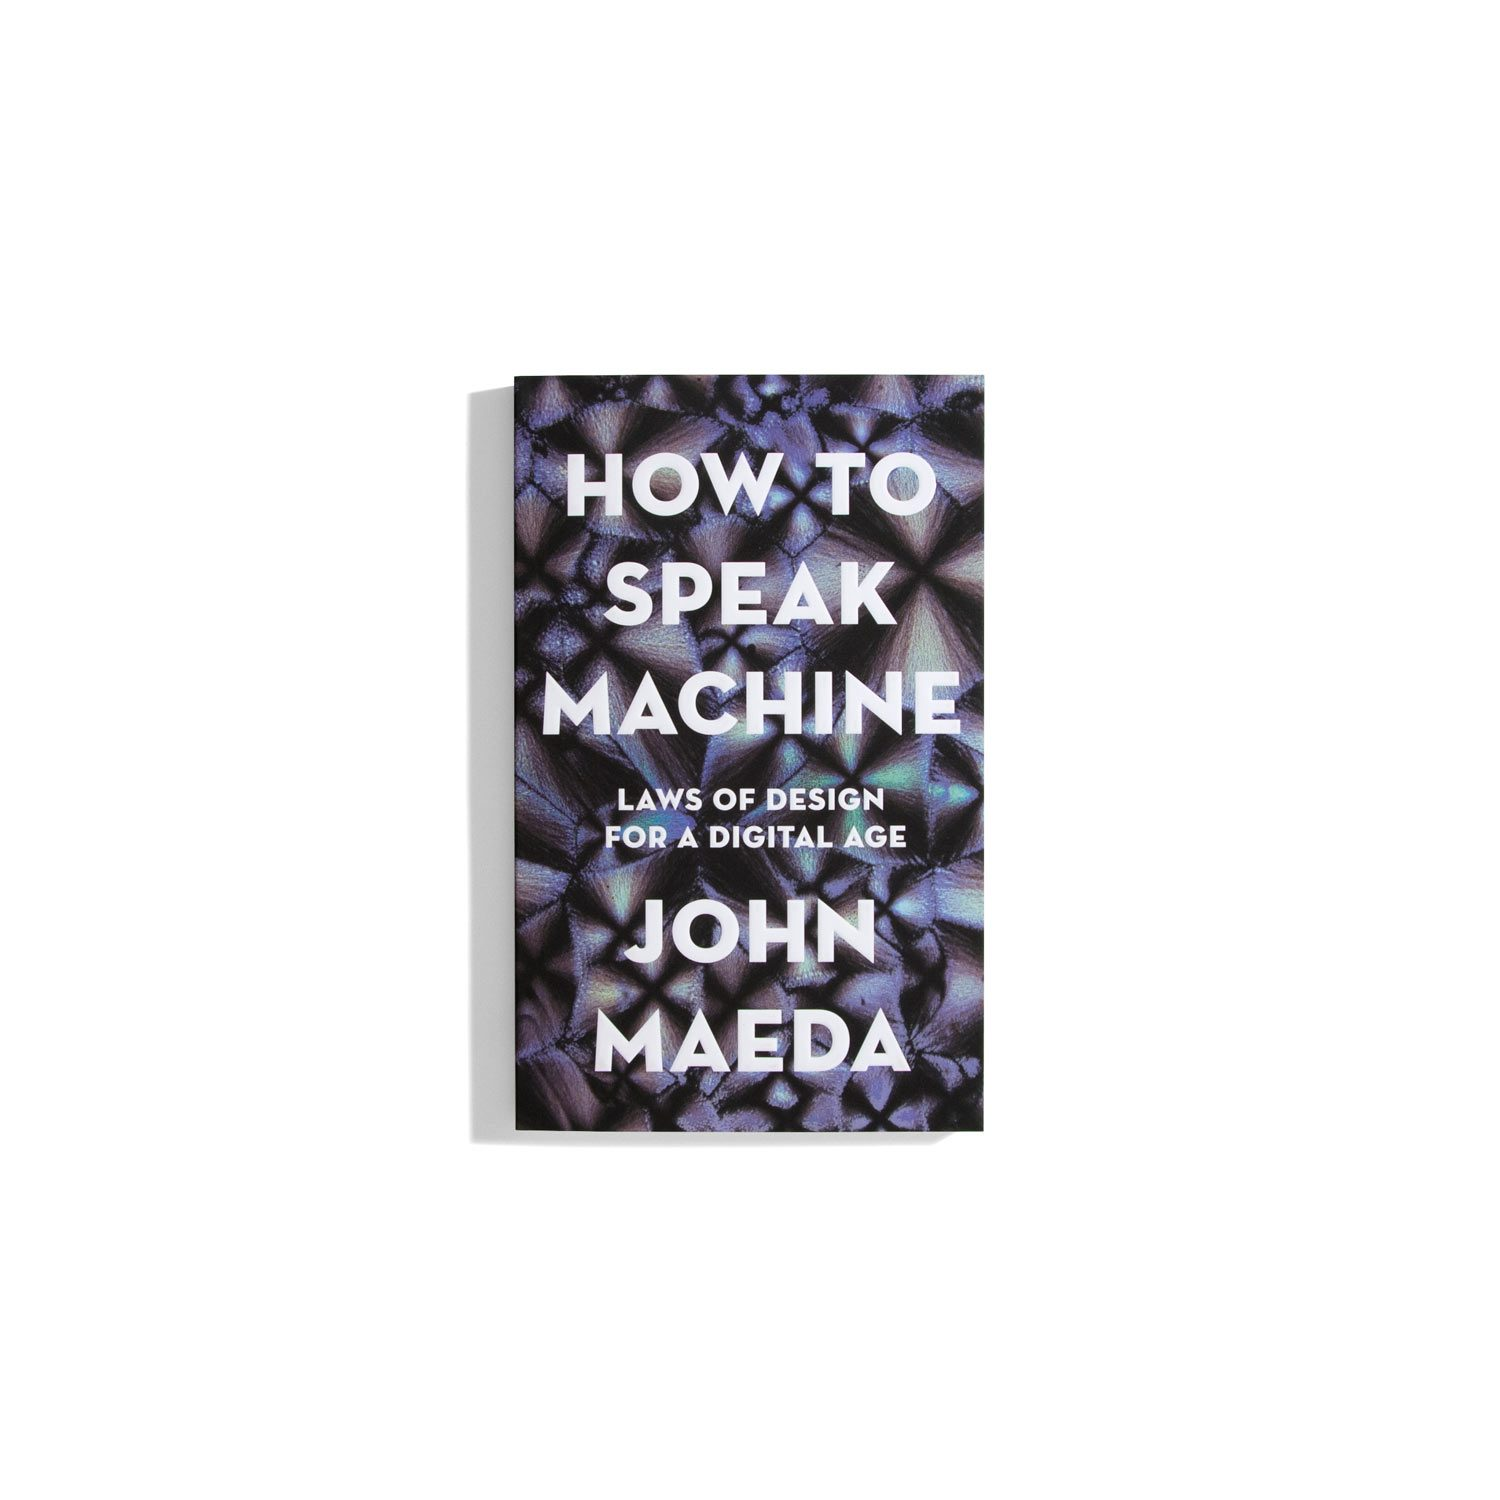 How to Speak Machine - John Maeda